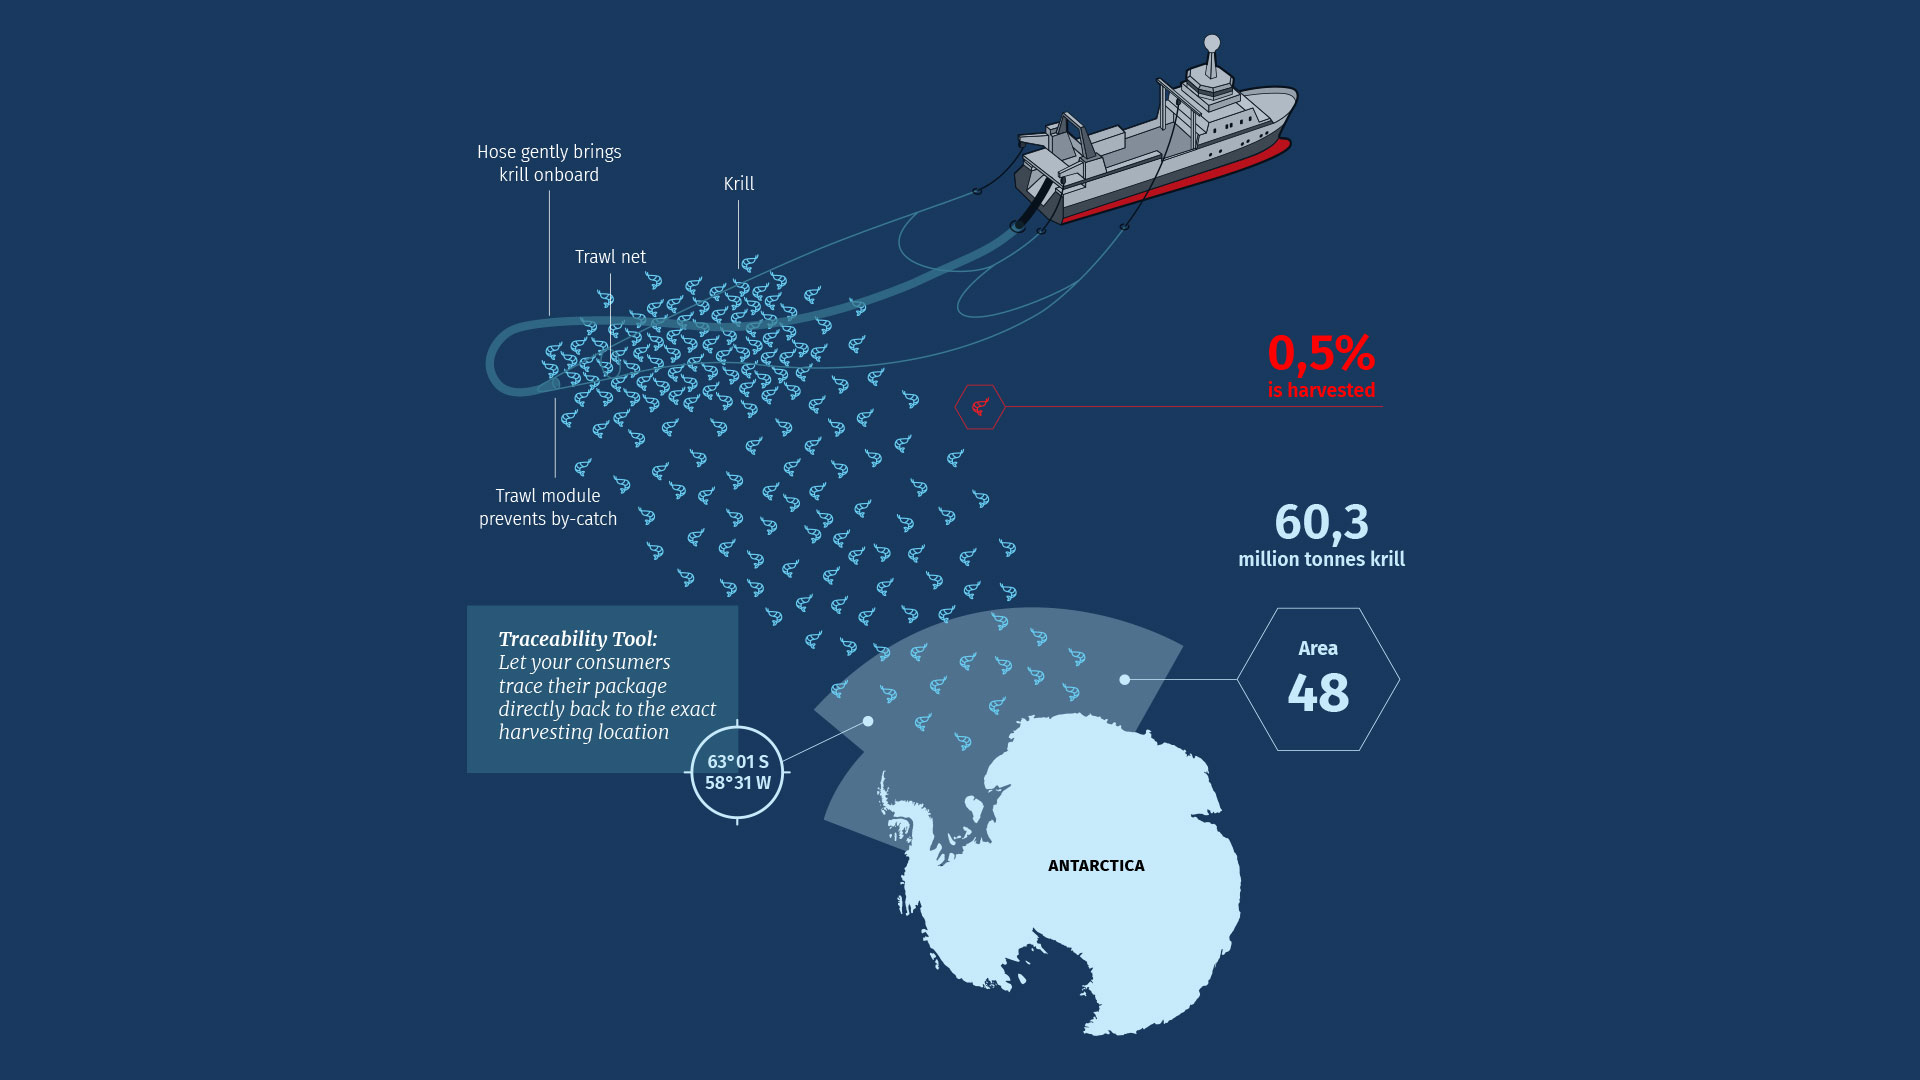 Sustainability-&-Traceability-In-Krill-Harvesting